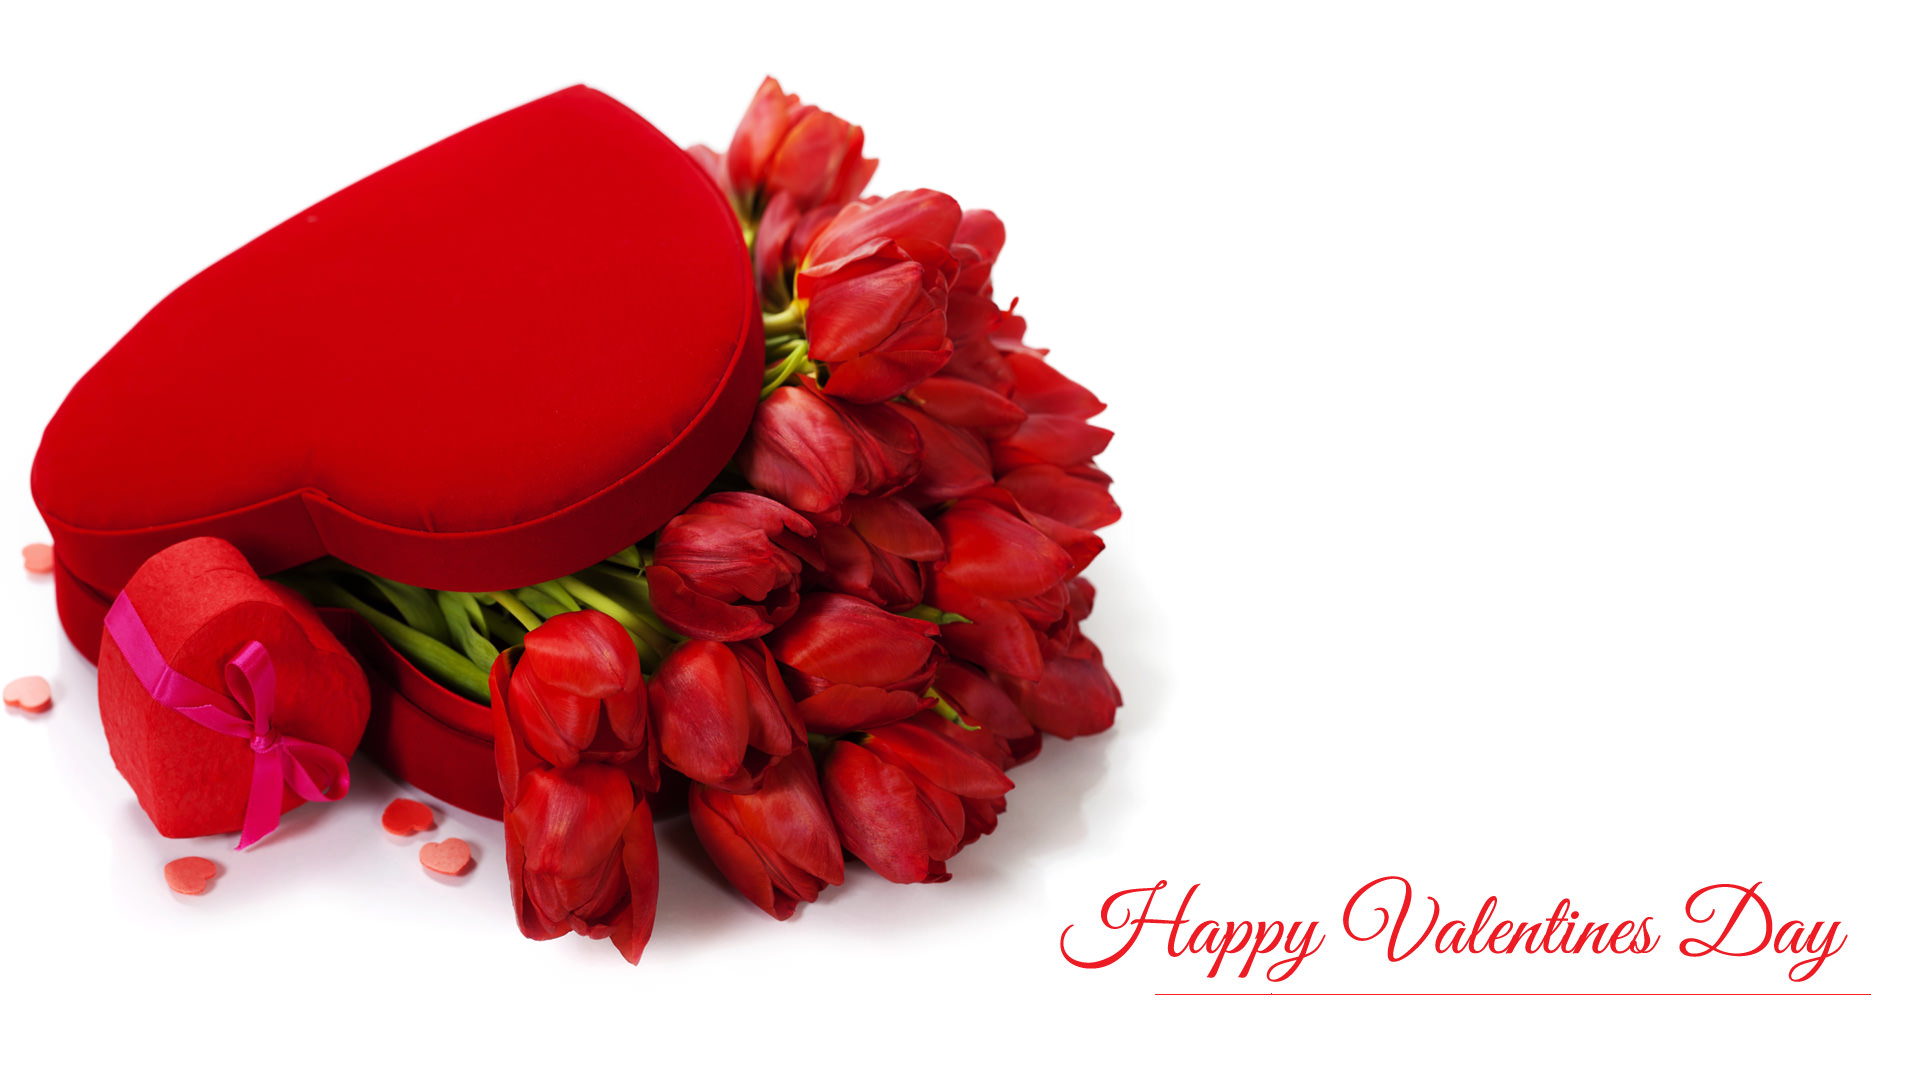 Full HD Valentine Day Images with Red Roses